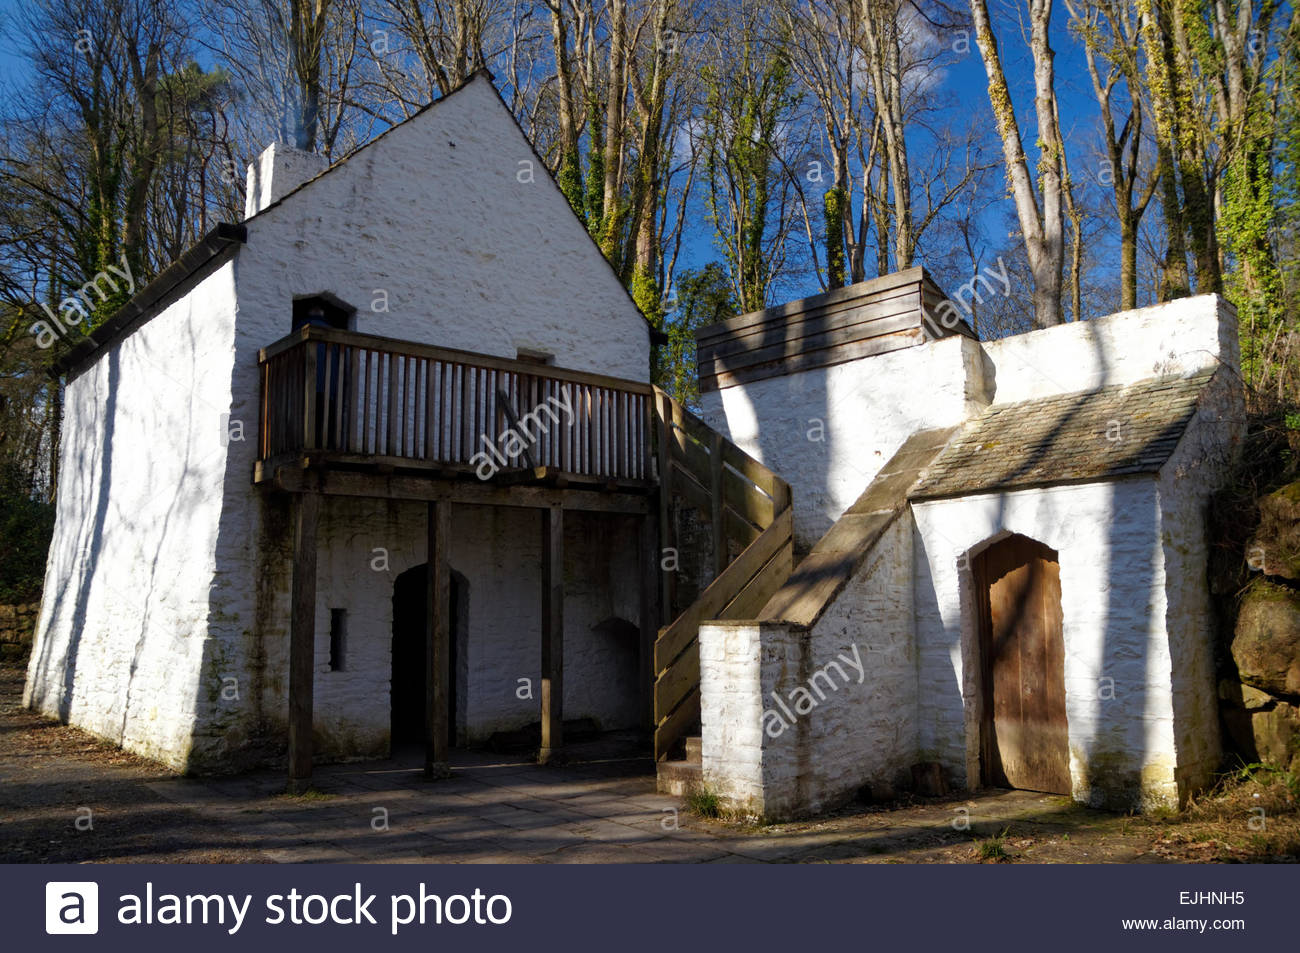 St. Fagans National History Museum South Wales, Tudor House, St Fagans National History Museum/Amgueddfa Werin ...